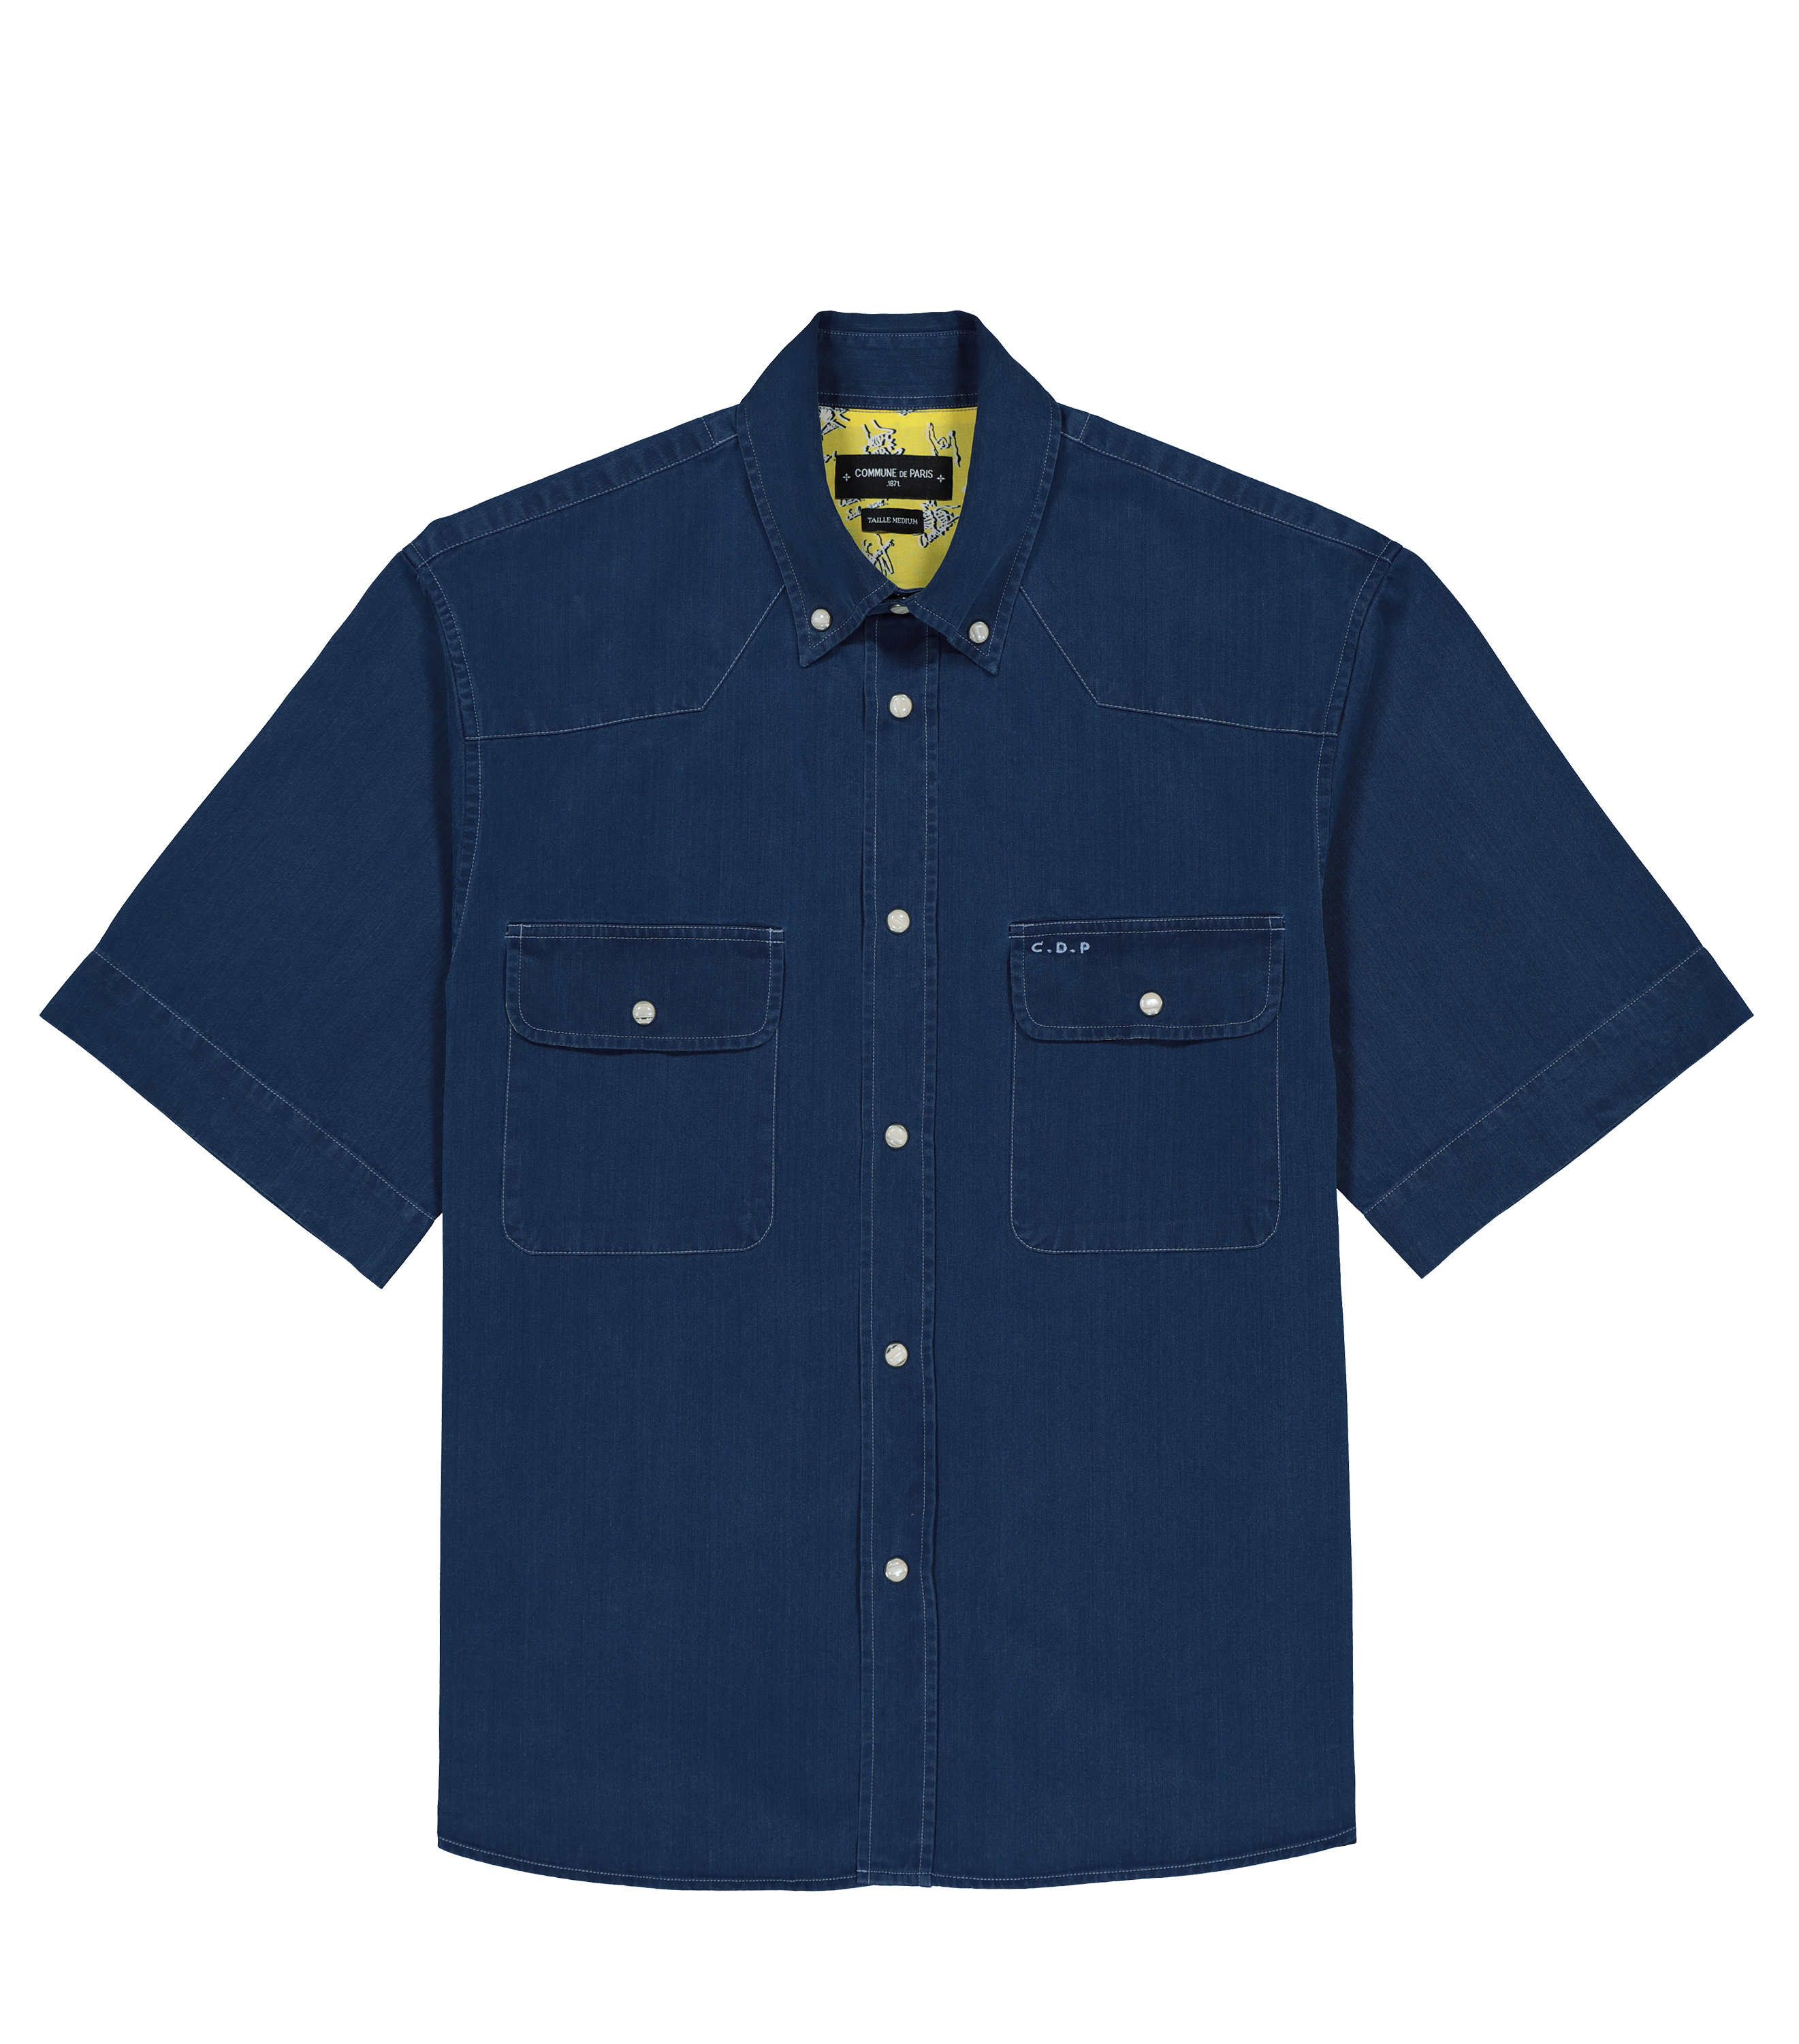 SHIRT BLANQUI-SS - Blue denim